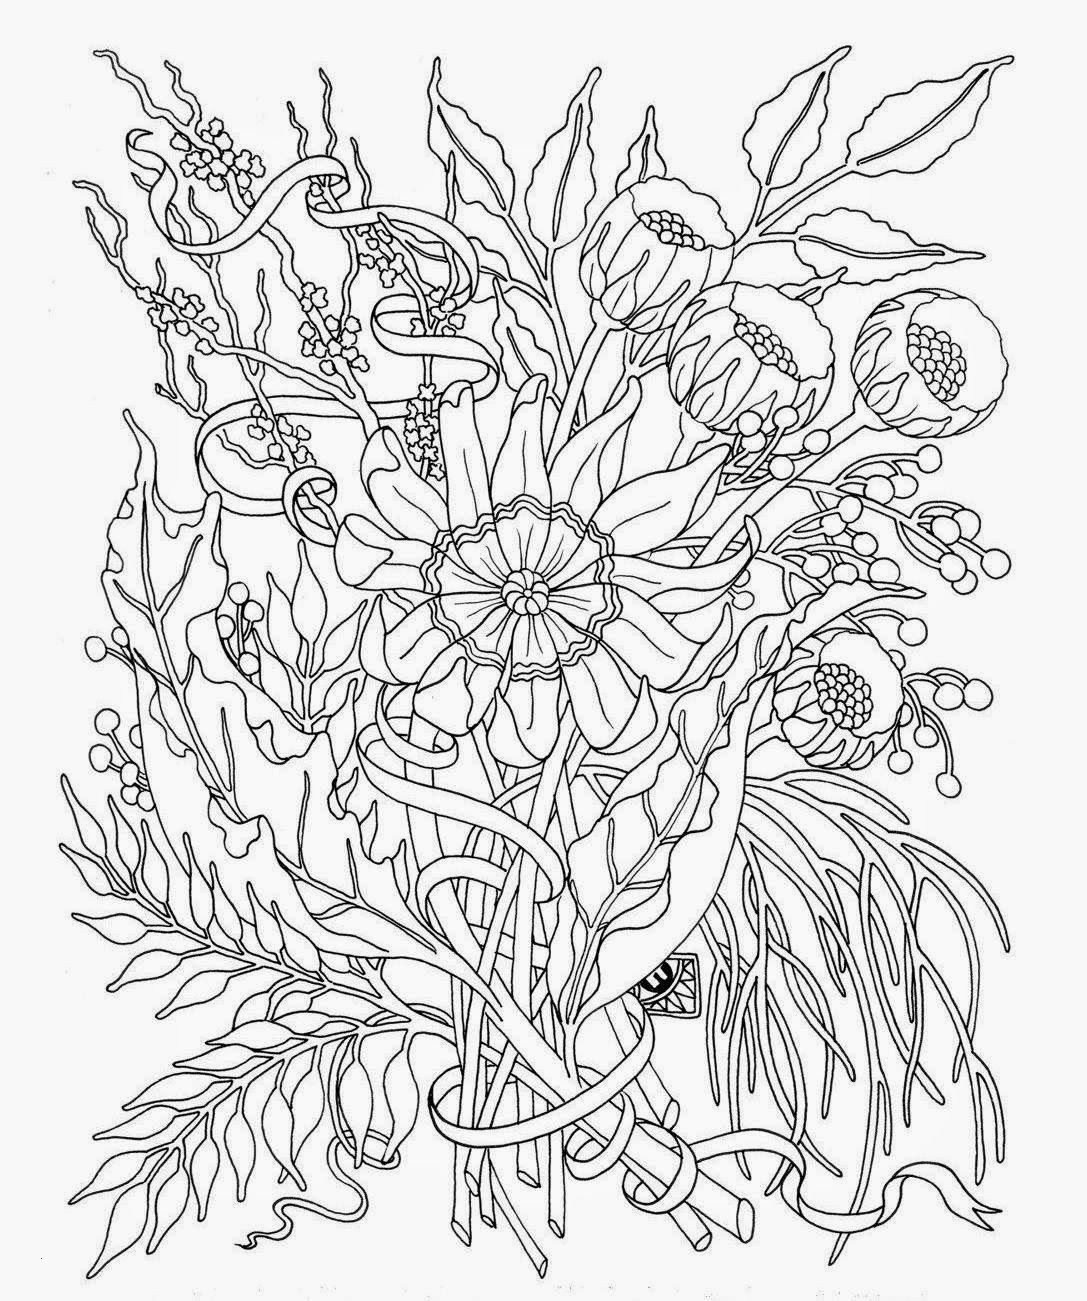 chelsea house vase of 17 awesome white and black vases bogekompresorturkiye com within coloring pagesflowers luxury cool vases flower vase coloring page pages flowers in a top i 0d